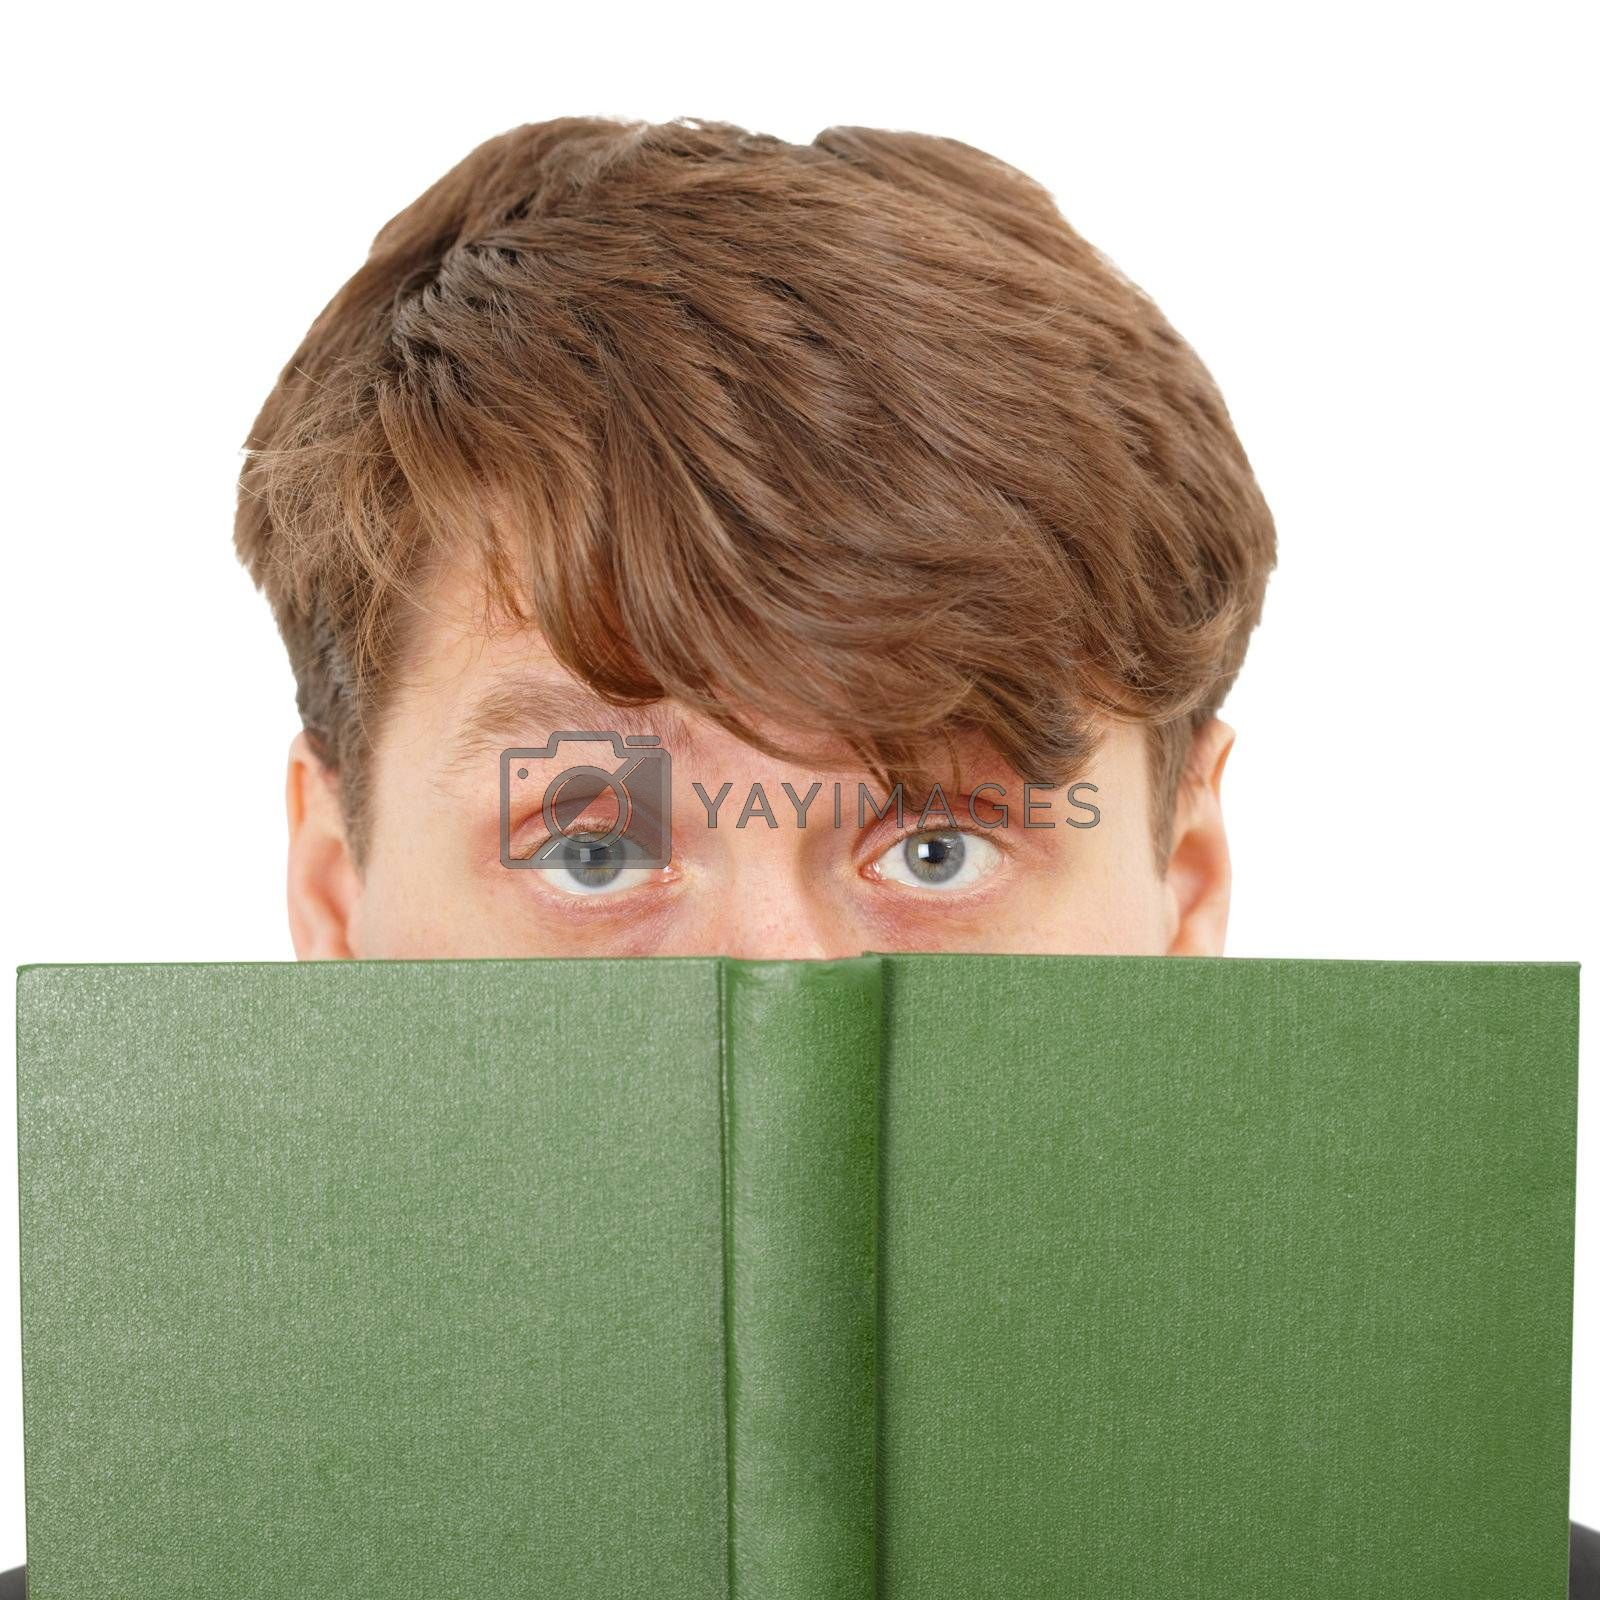 The young man hid his face behind a green book, close-up on a white background